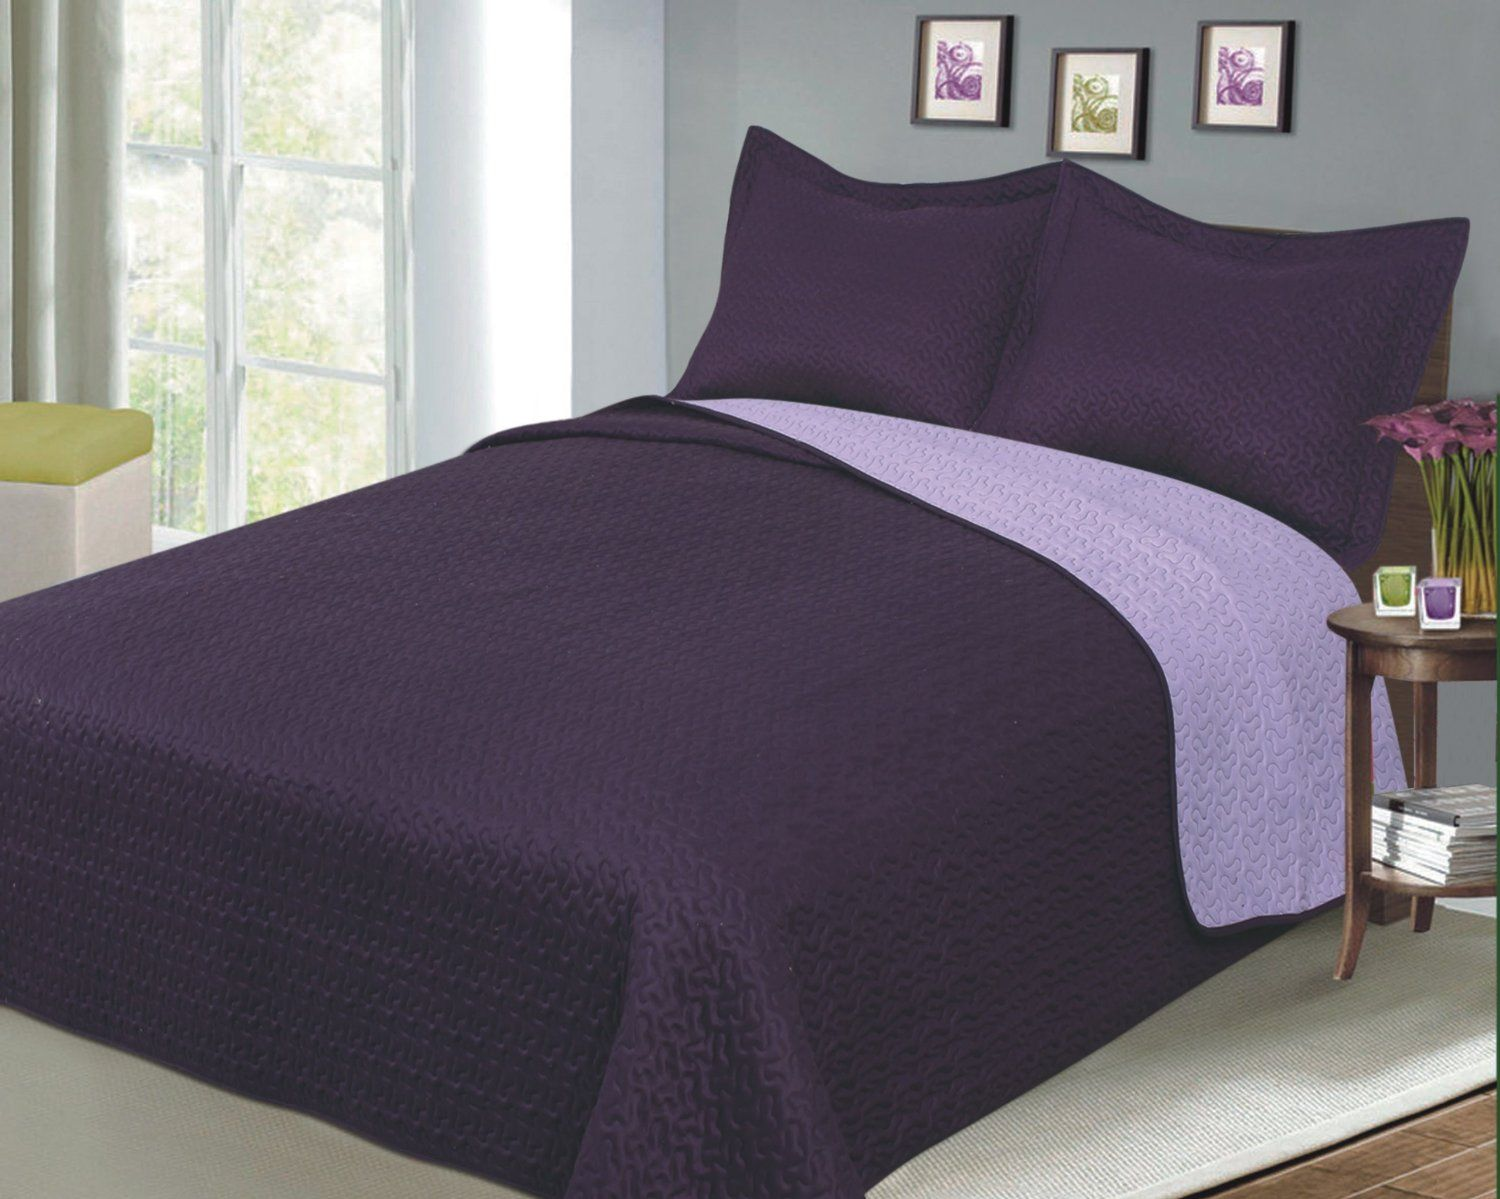 Reversible Solid Color Mini Quilt Sets, Twin, Plum/Lilac | Ease ... : solid quilt bedding - Adamdwight.com